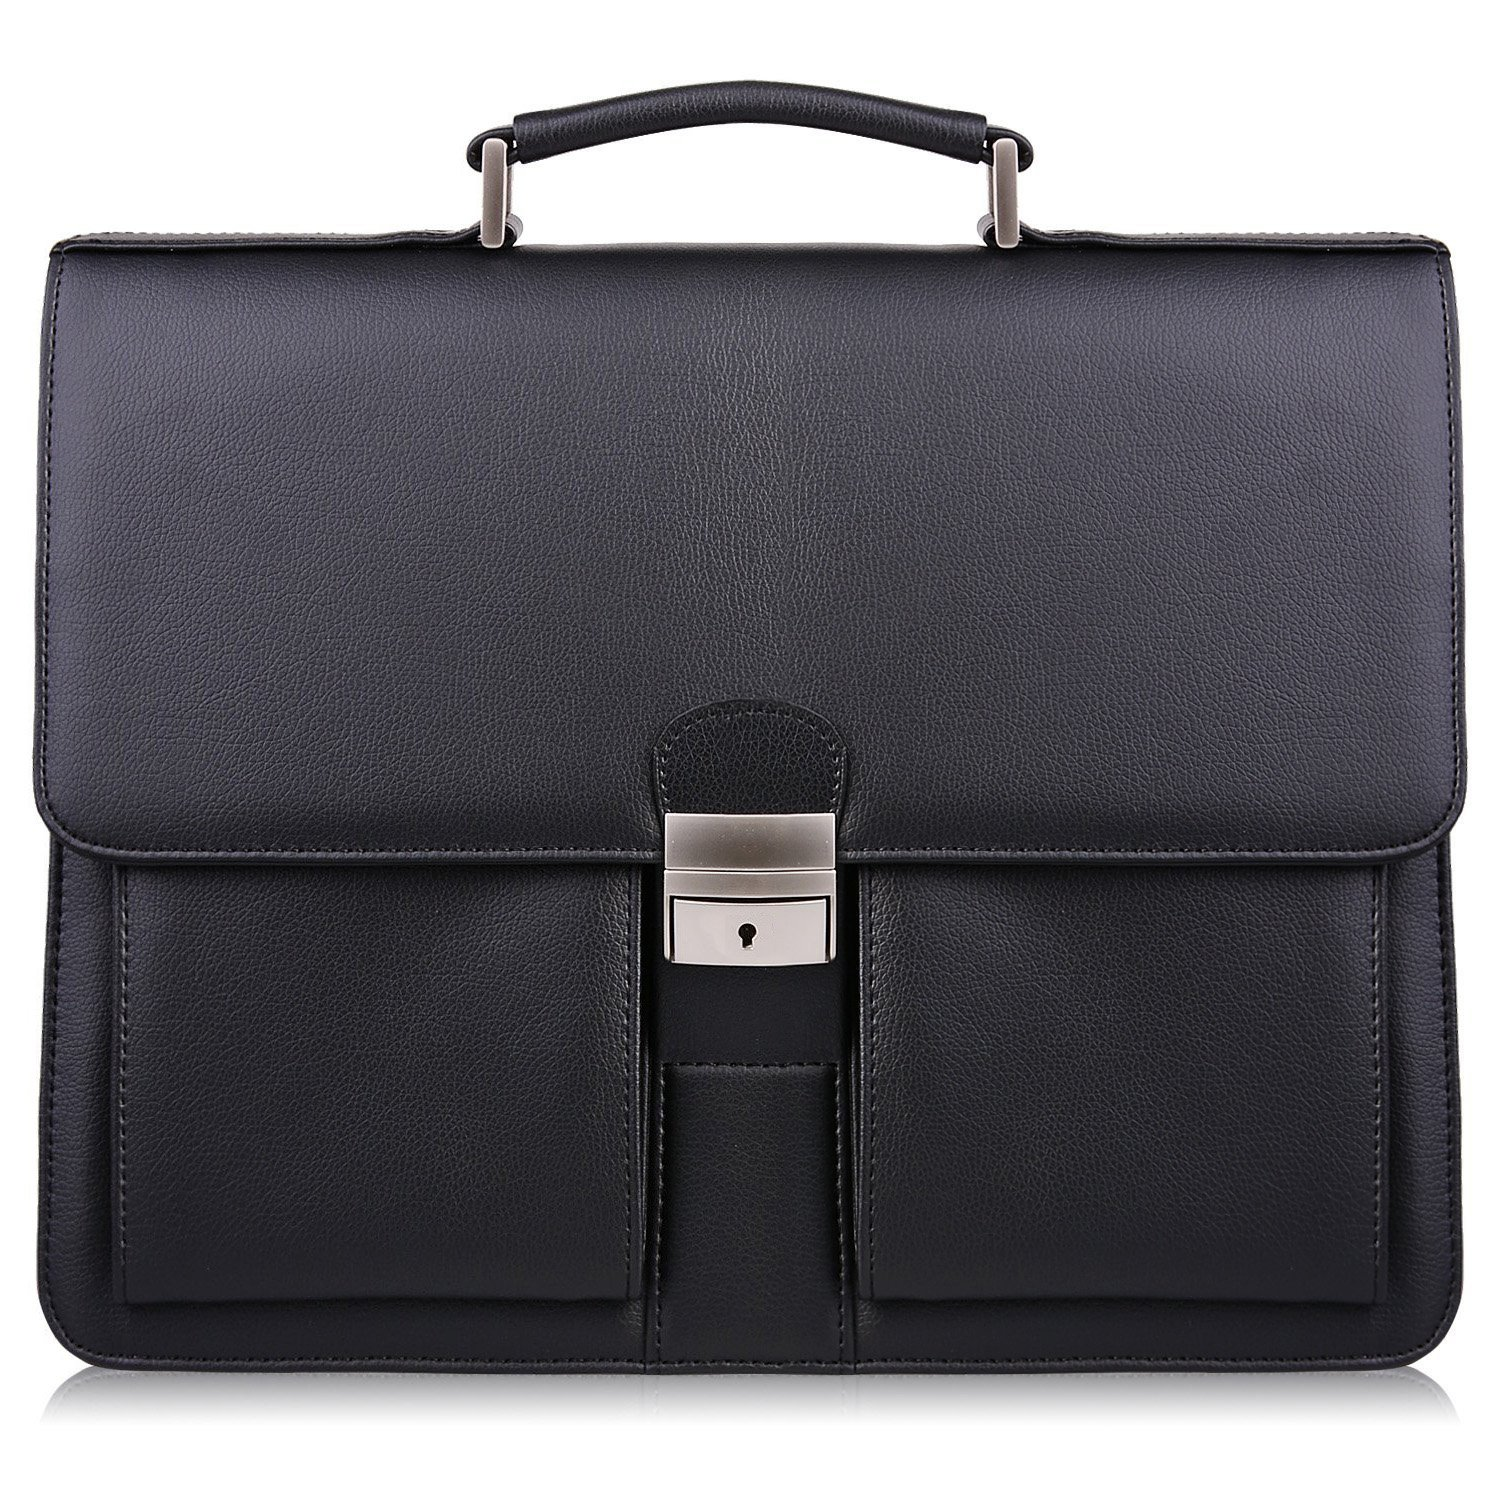 ON SALE S-ZONE Mens Microfiber Leather Flapover Briefcase Messenger Bag fit 14 inch Laptop Bag (Black-1)